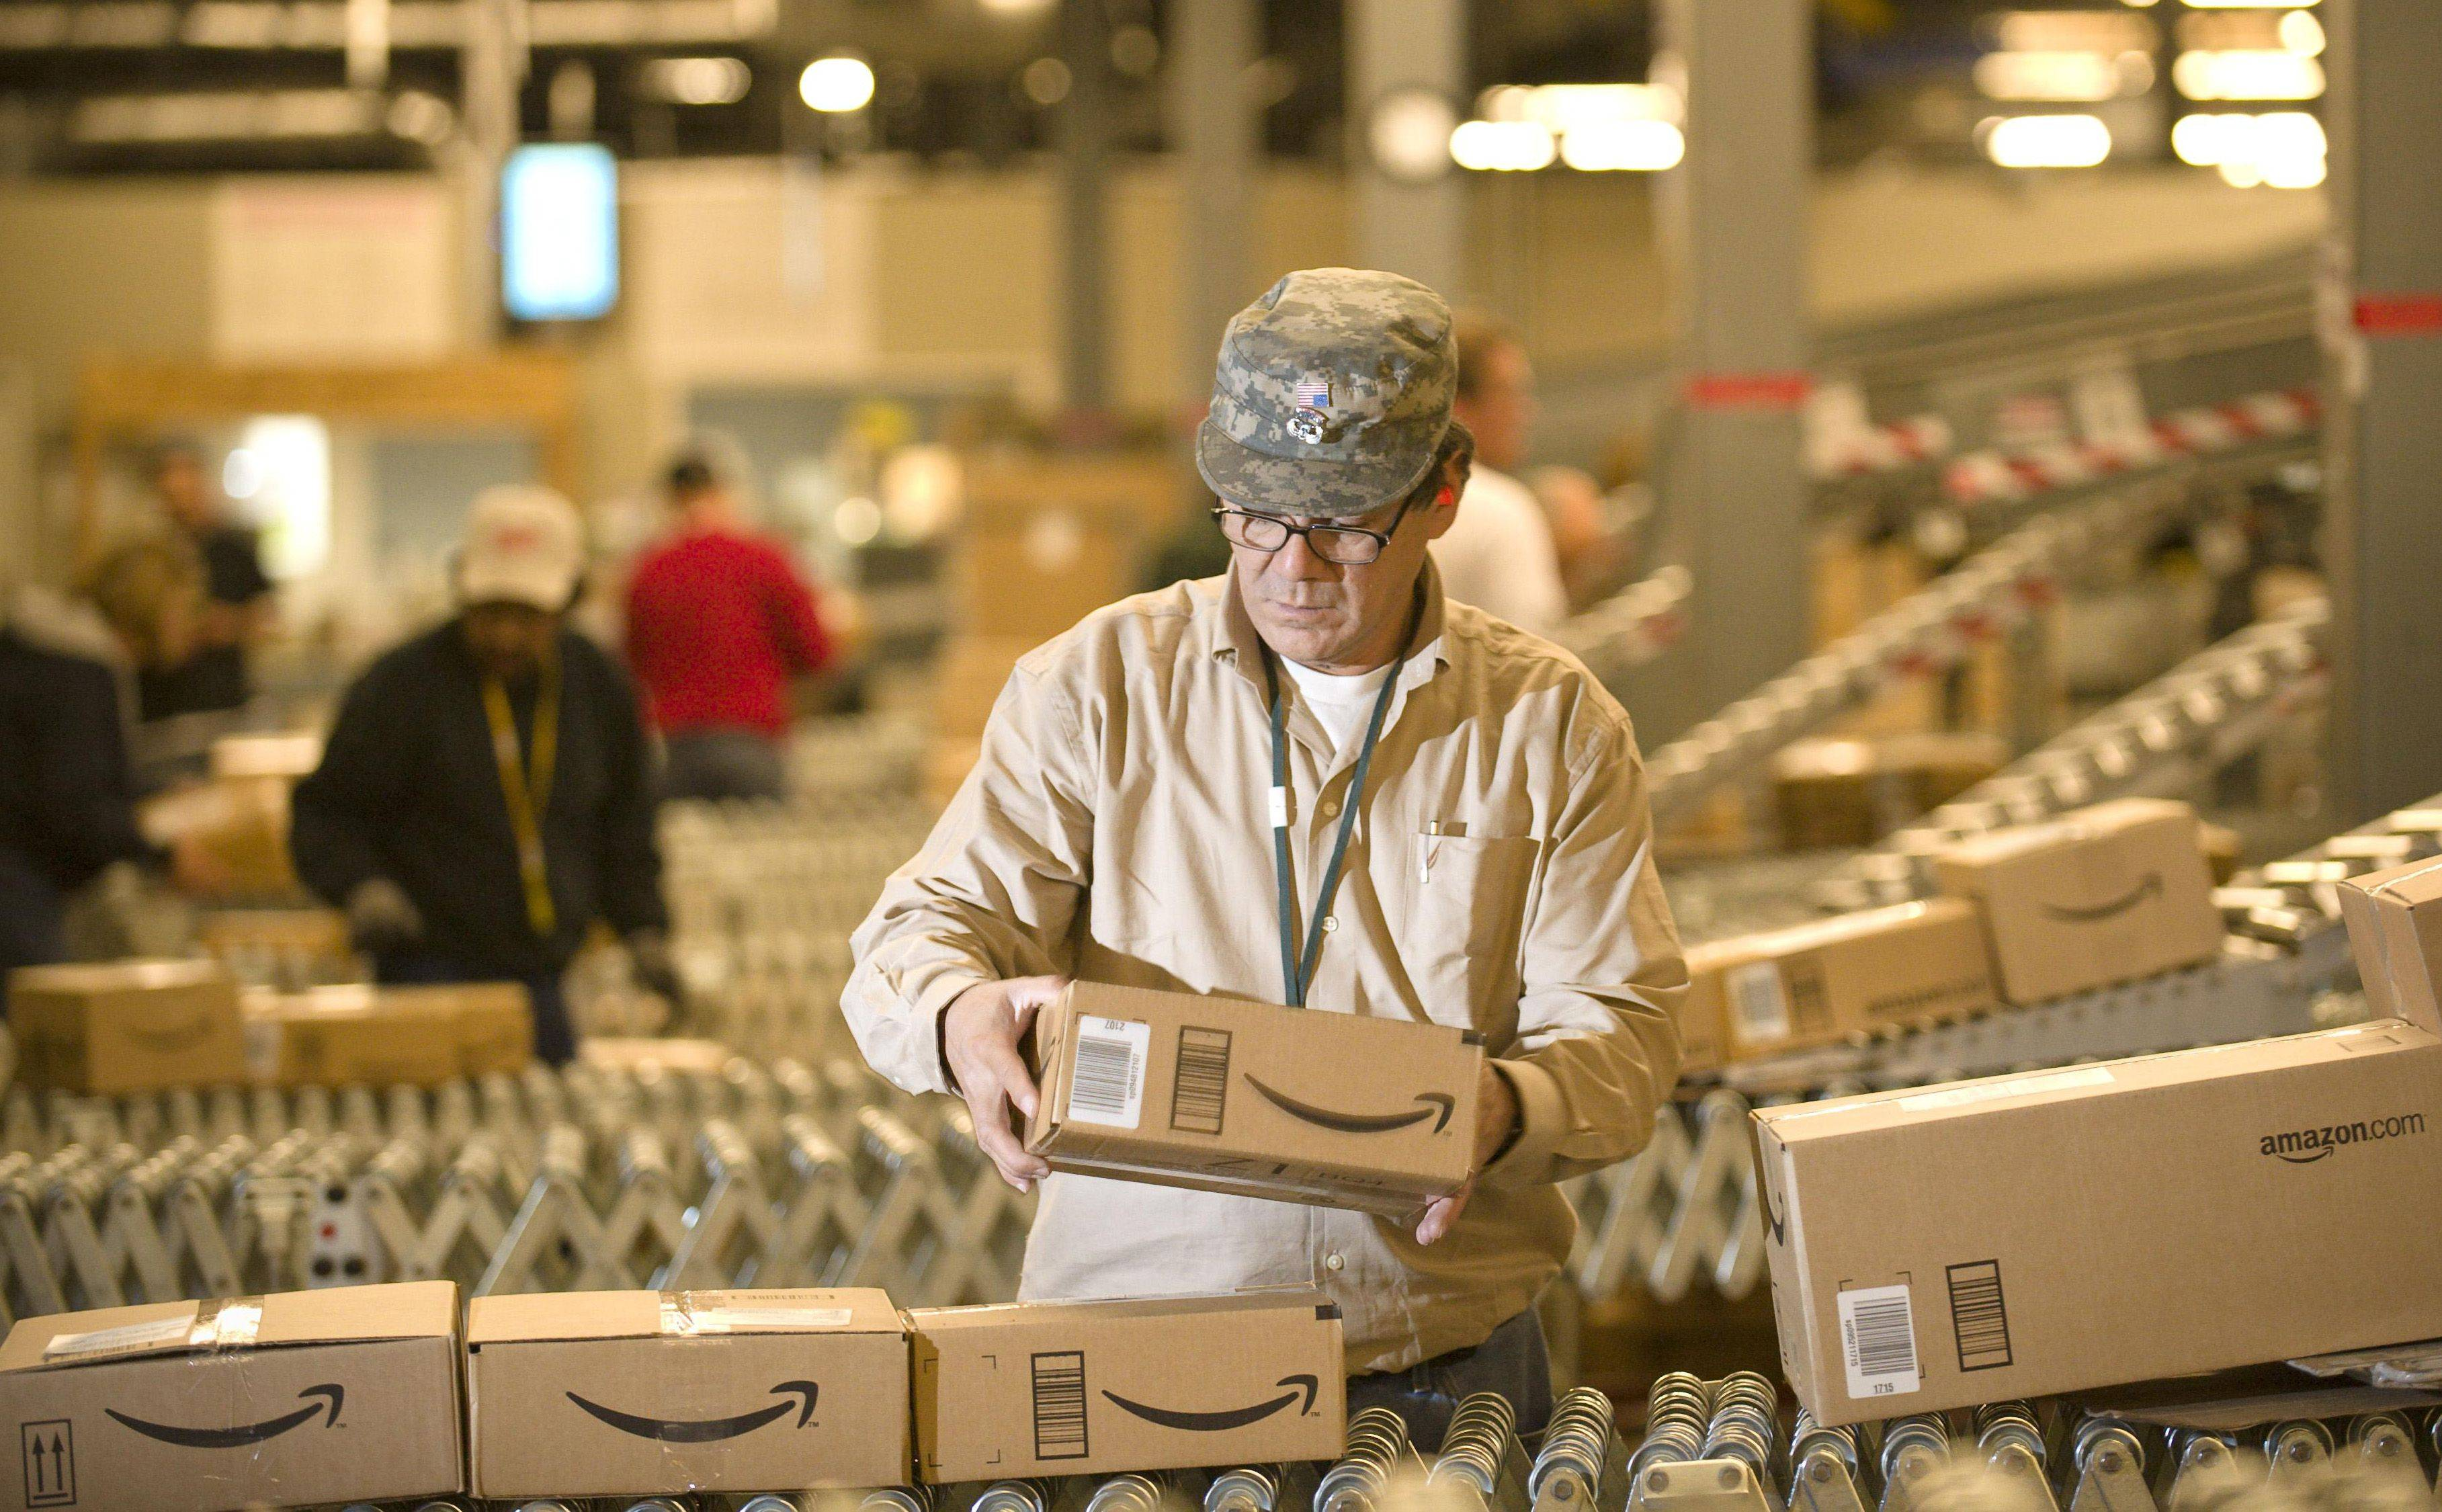 Amazon says hiring will include a broad range of positions, including engineers and software developers but also big teams to work in its growing network of fulfillment centers.